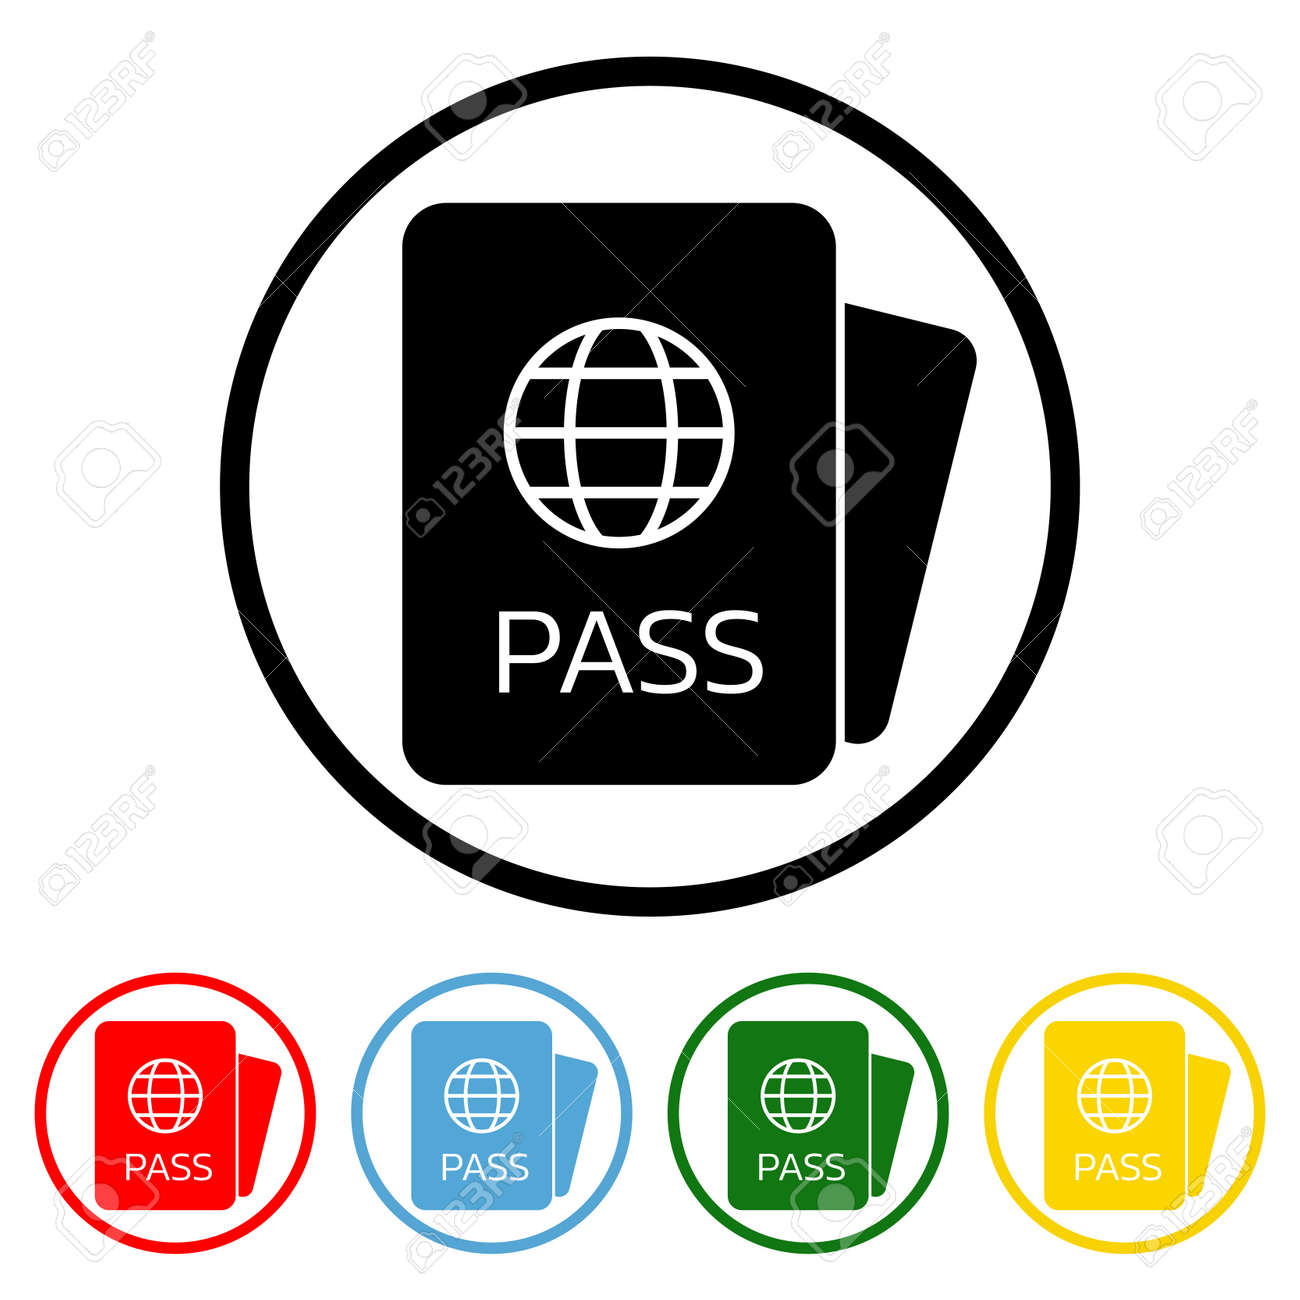 Passport icon vector illustration design element with four color variations. Vector illustration. All in a single layer. Elements for design. Passport Icon flat design. - 172204464